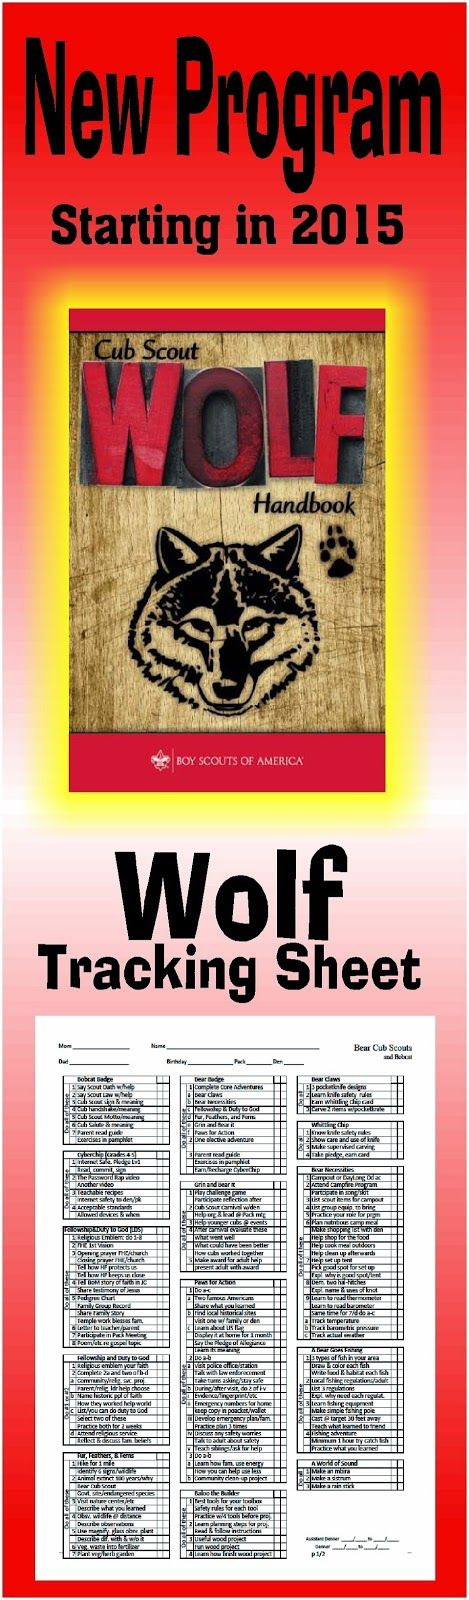 This is a great free PRINTABLE Tracking sheet for Organizing. This site has other tracking sheets and a lot of great Cub Scout Ideas compliments of Akelas Council Cub Scout Leader Training. Utah National Parks Council has planned this exciting 4 1/2 day Cub Scout Leader Training that covers lots of Cub Scout Info and Webelos Outdoor Experience, and much more. For more info go to AkelasCouncil.com